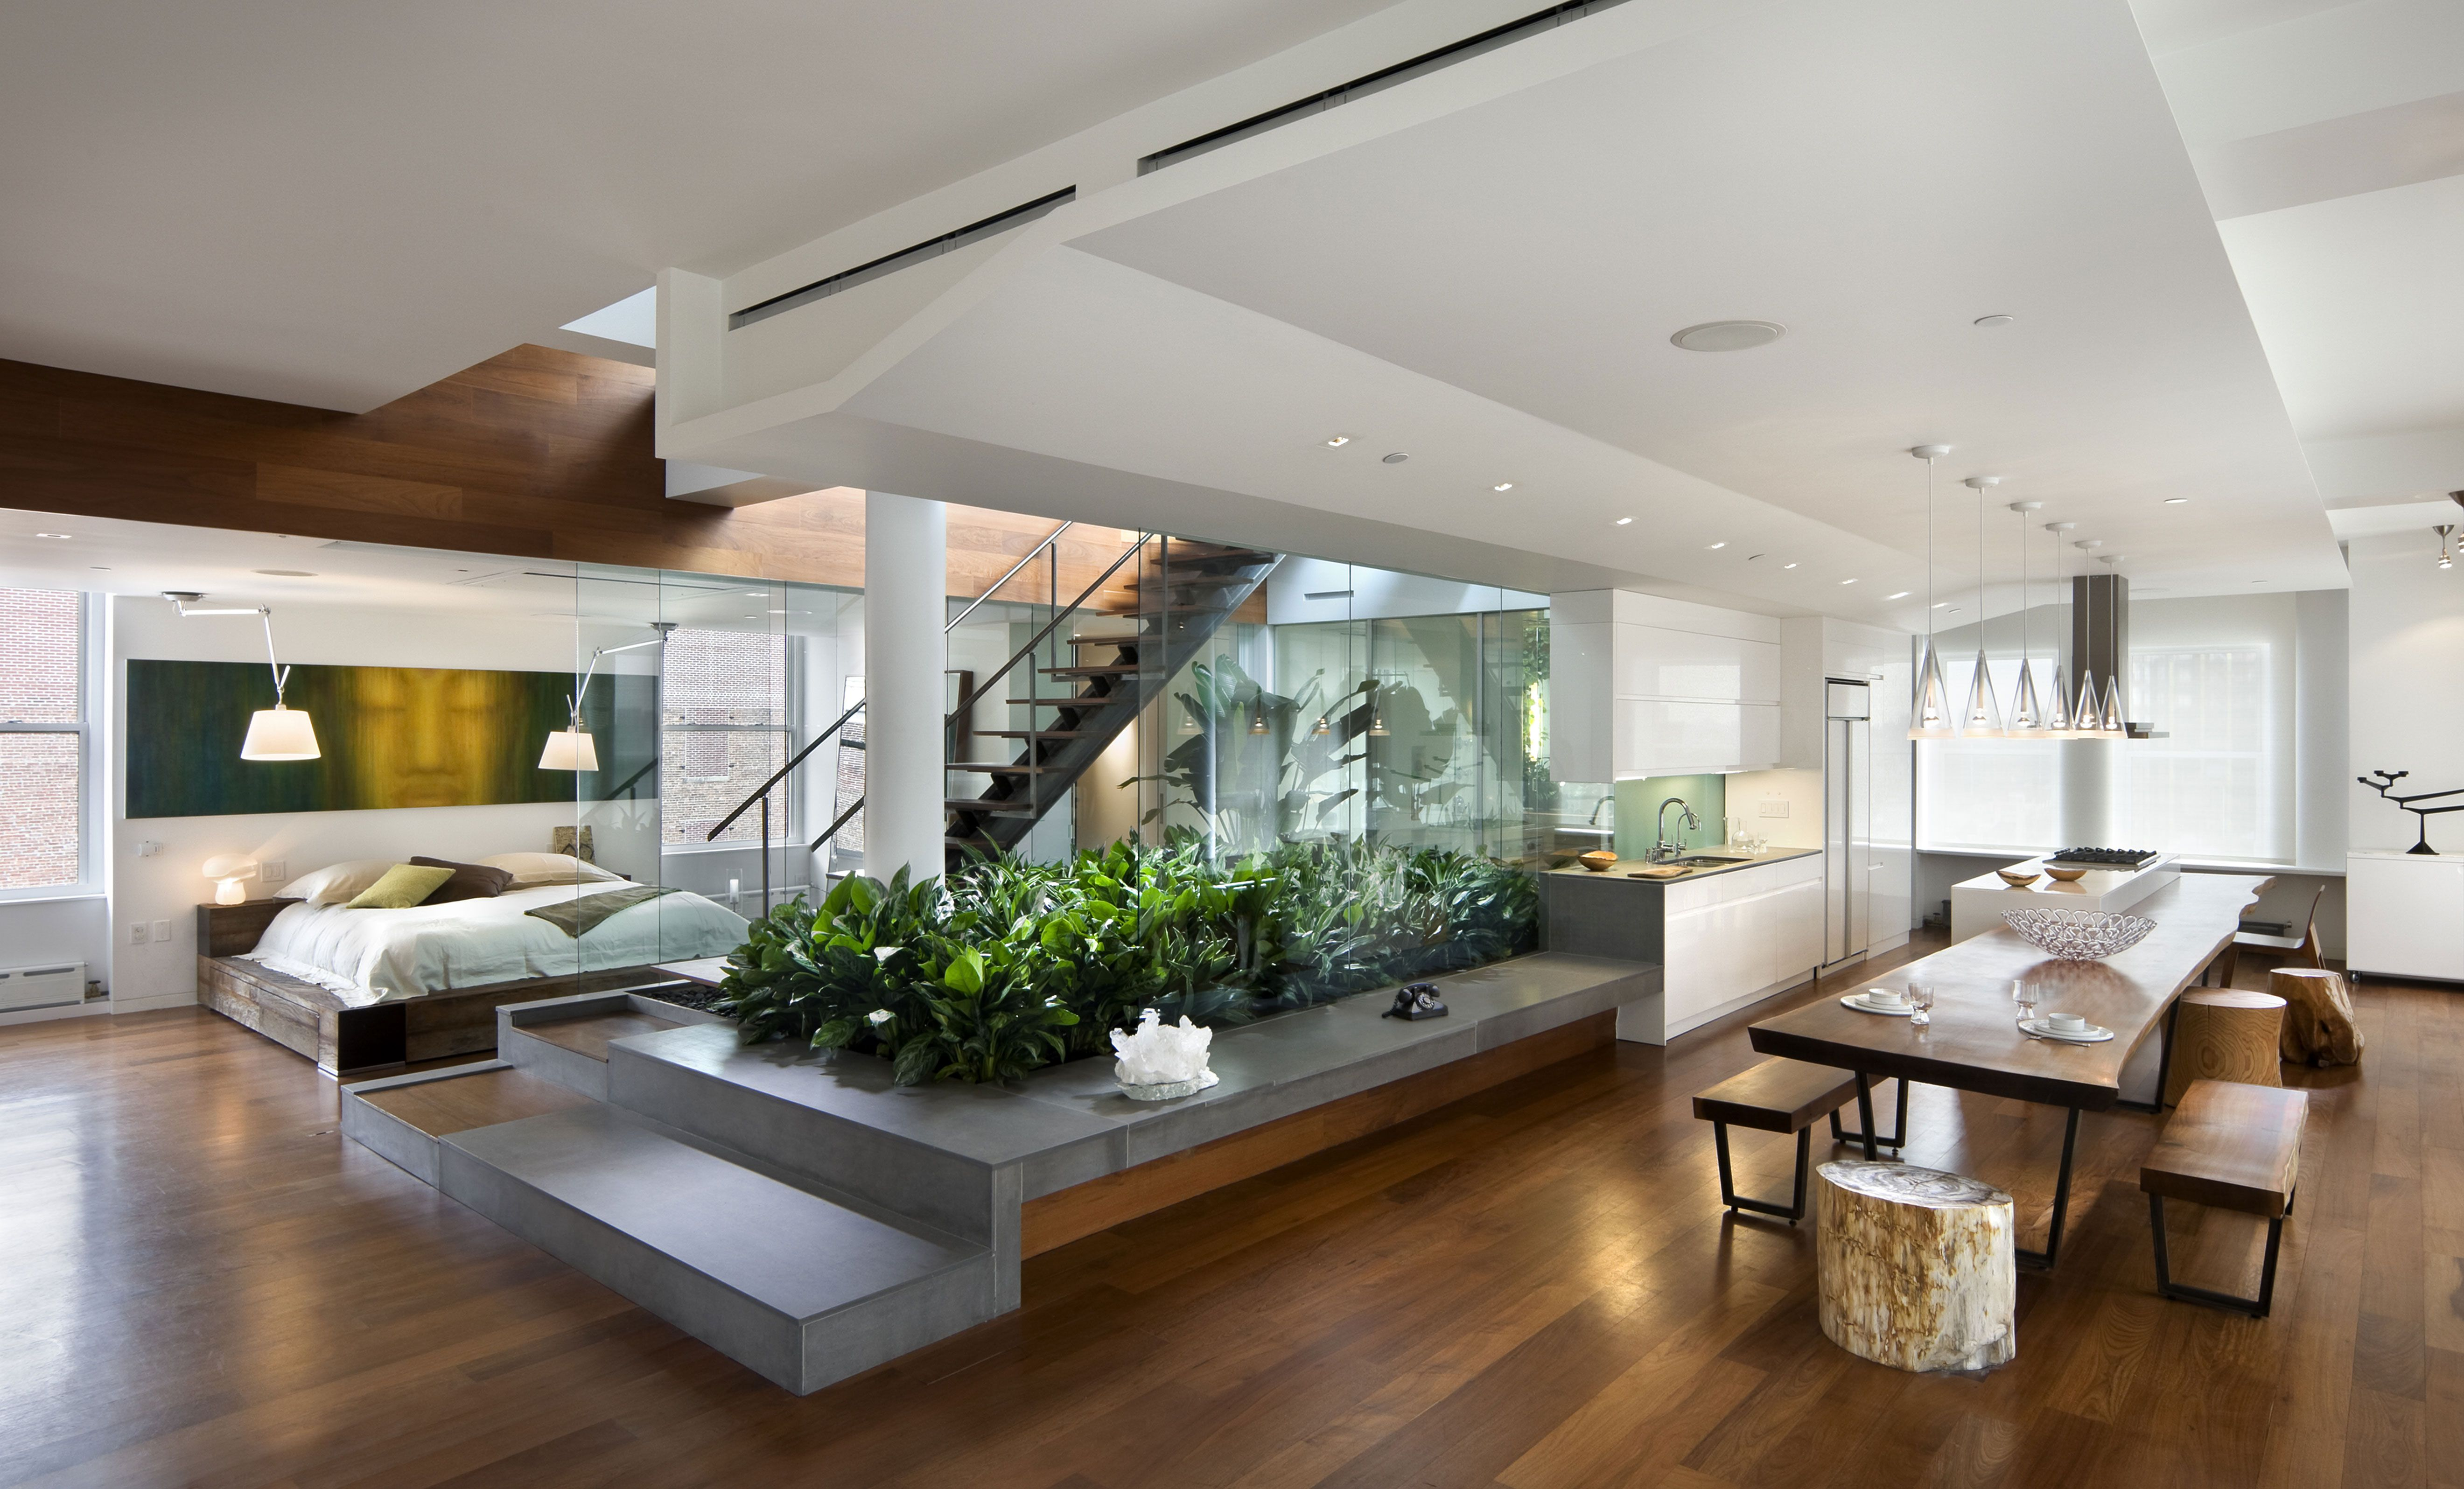 Beau Interior Wonderful Design Modern Indoor Plants Contemporary Exciting Potted  For Decoration At House Flower. Dental Office Design Floor Plans. Office  Design ...